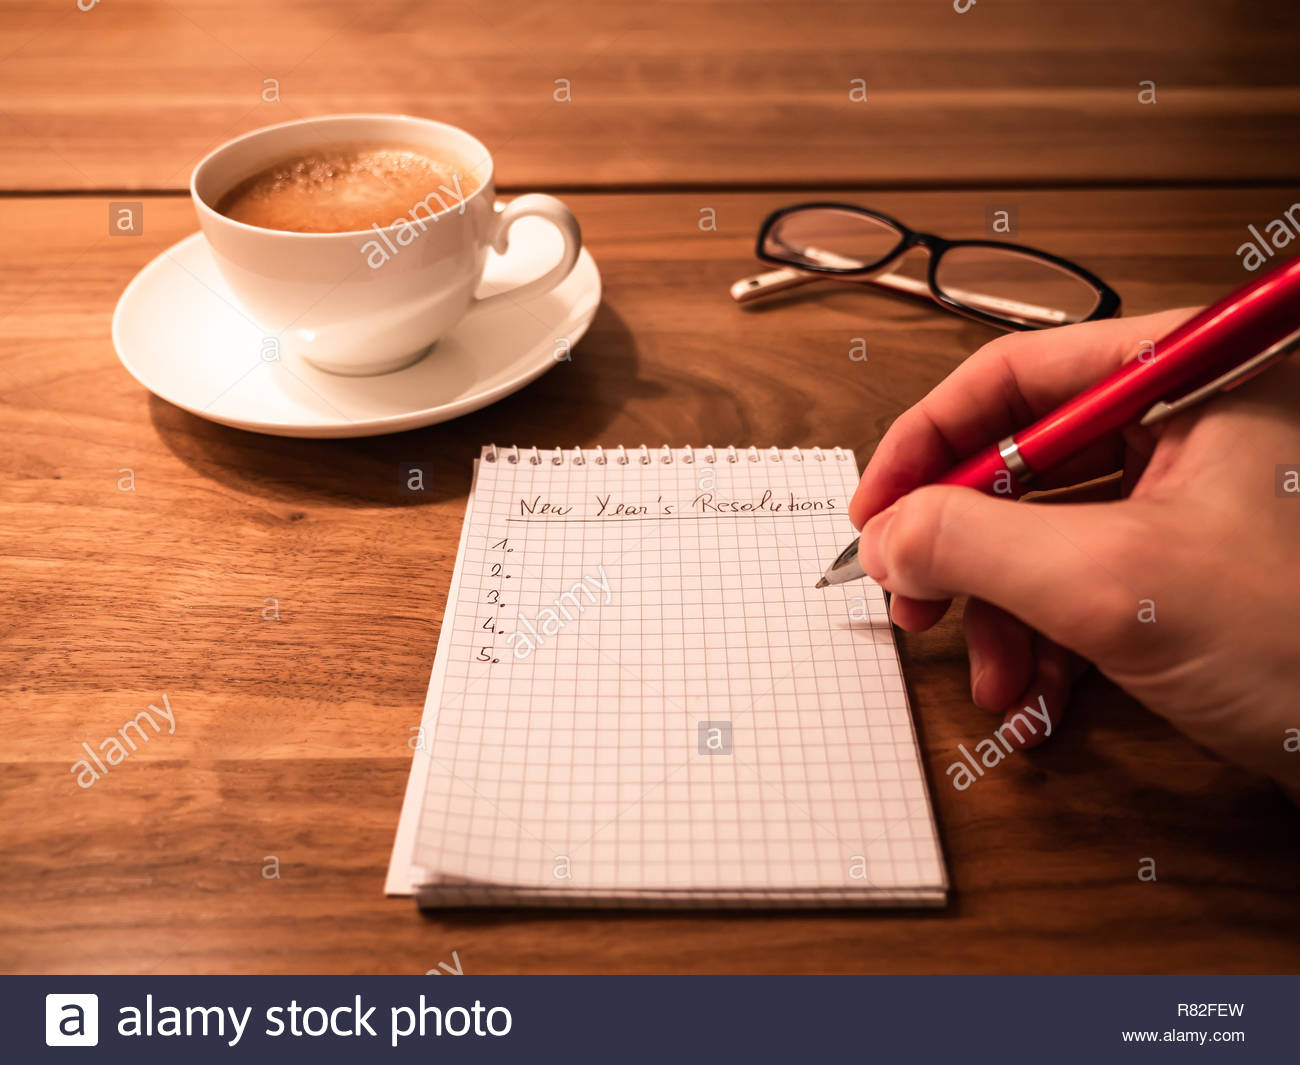 writing new years resolutions and goals with a pen on a notepad for the beginning of